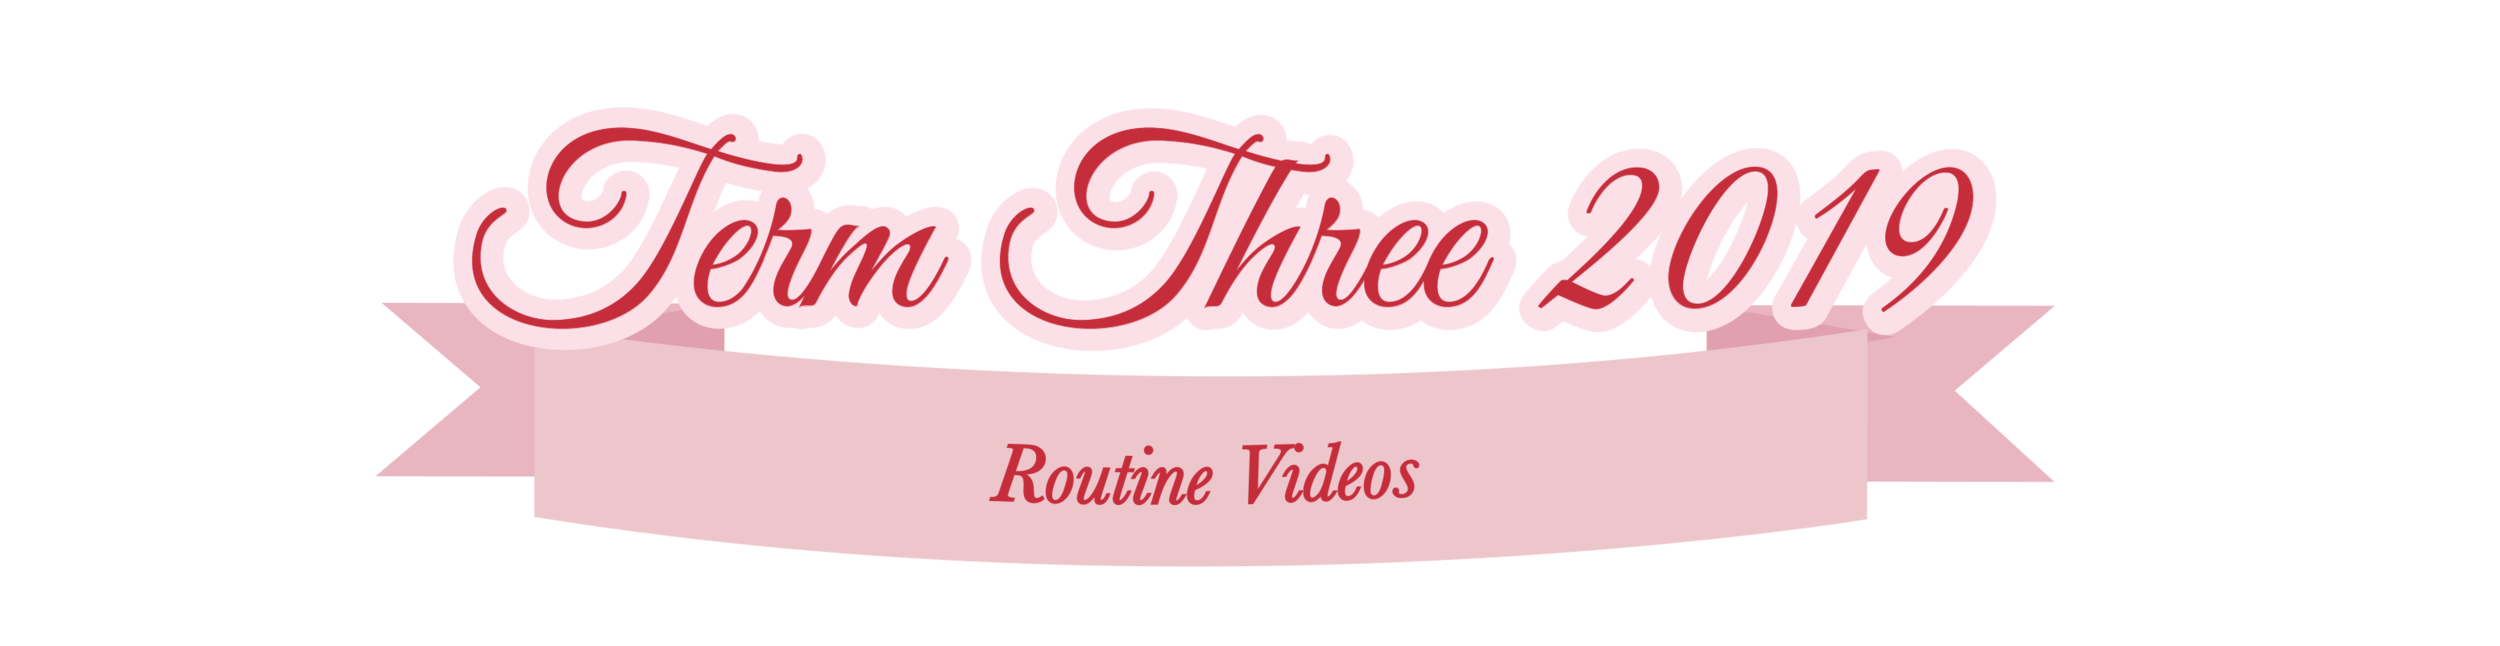 video-term3-banner.png